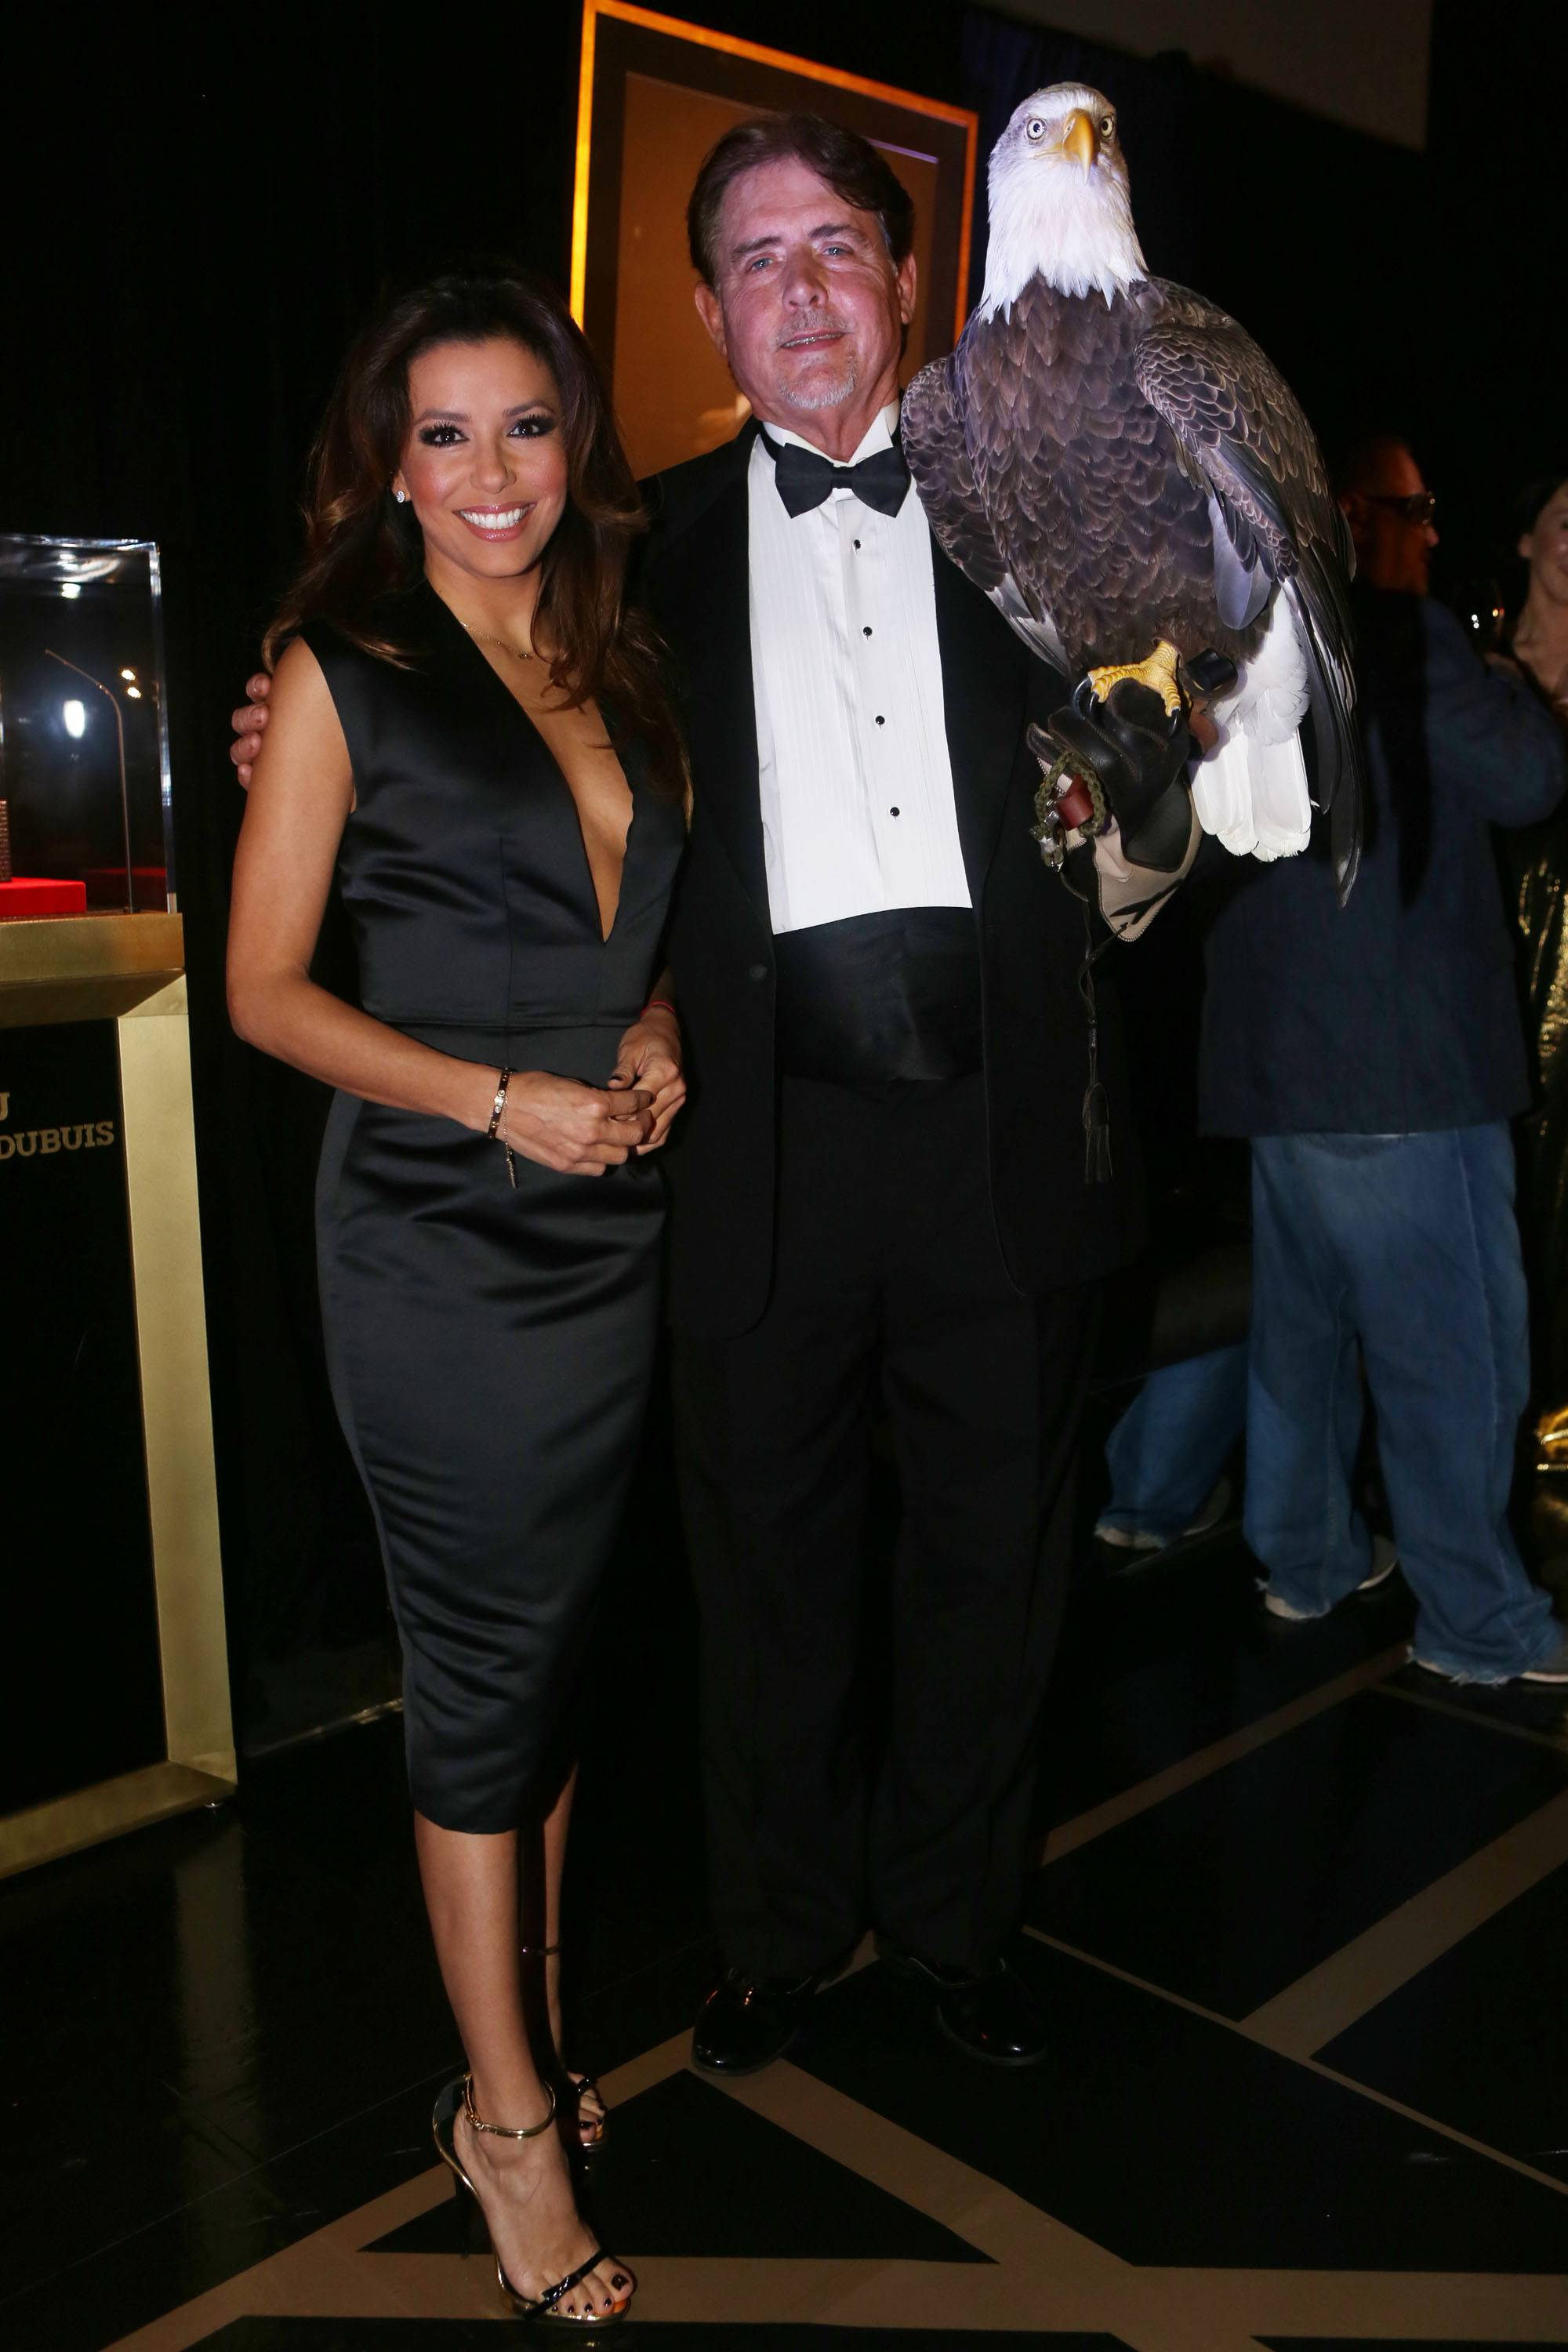 Eva Longoria & Bald Eagle3